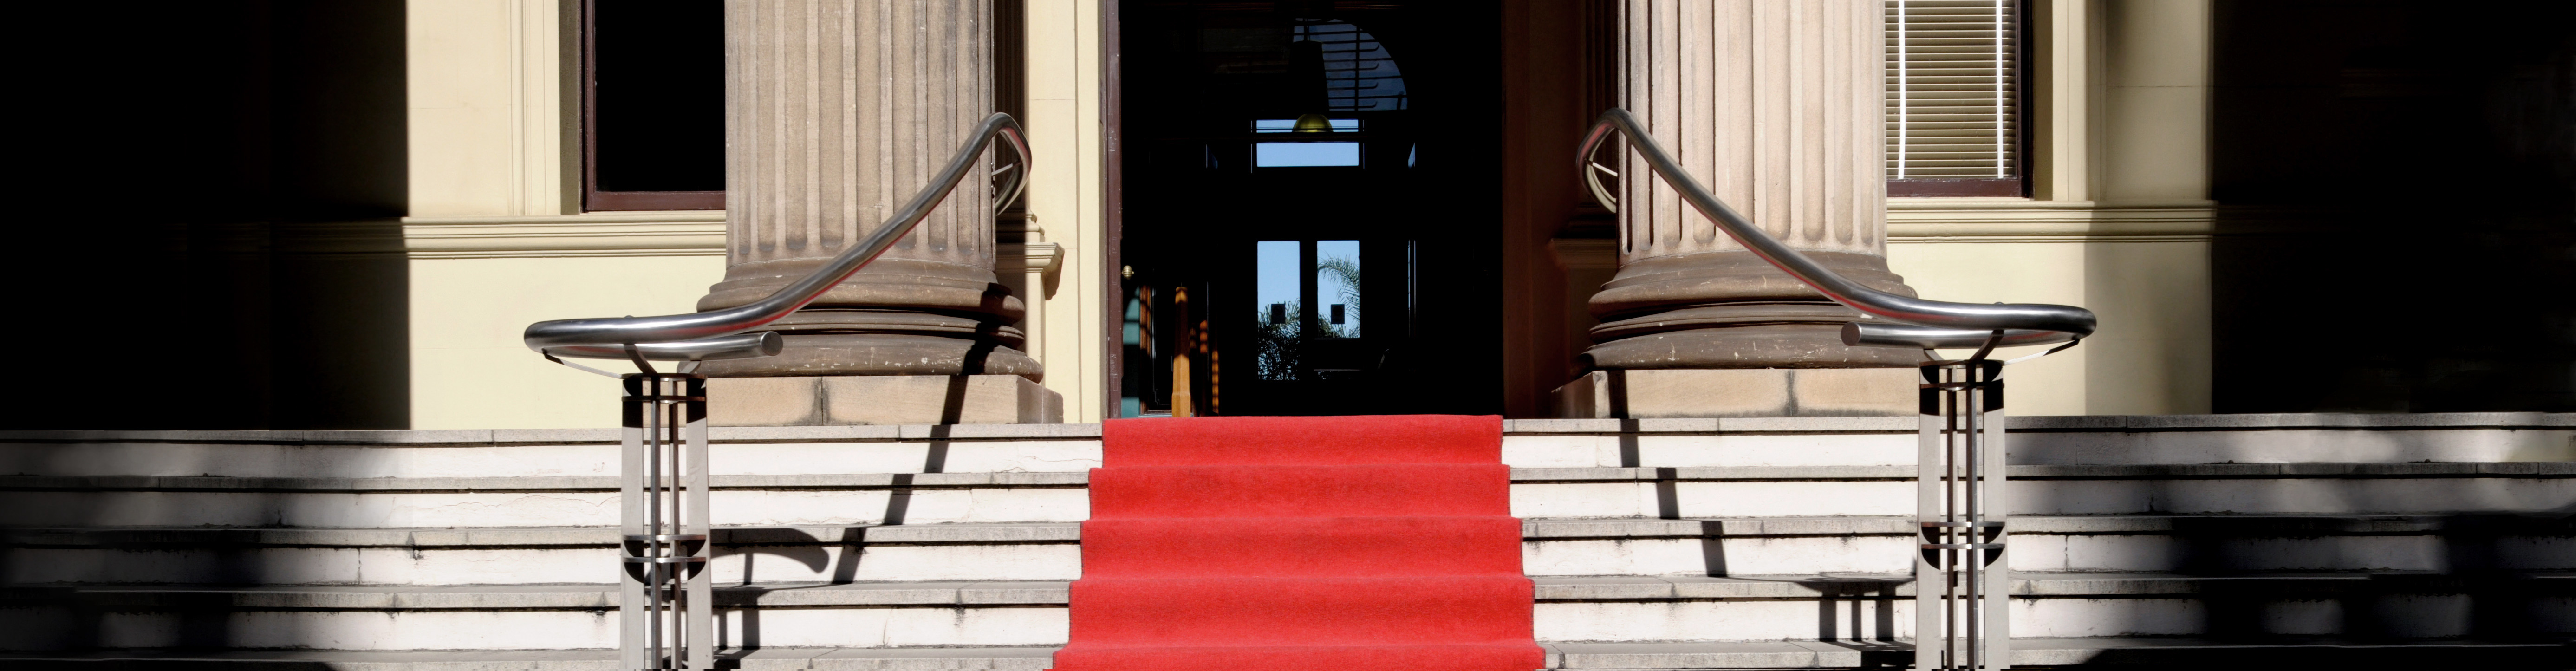 Red carpet laid in front of a Georgian or Regency stone building.  Alternative file shown below: